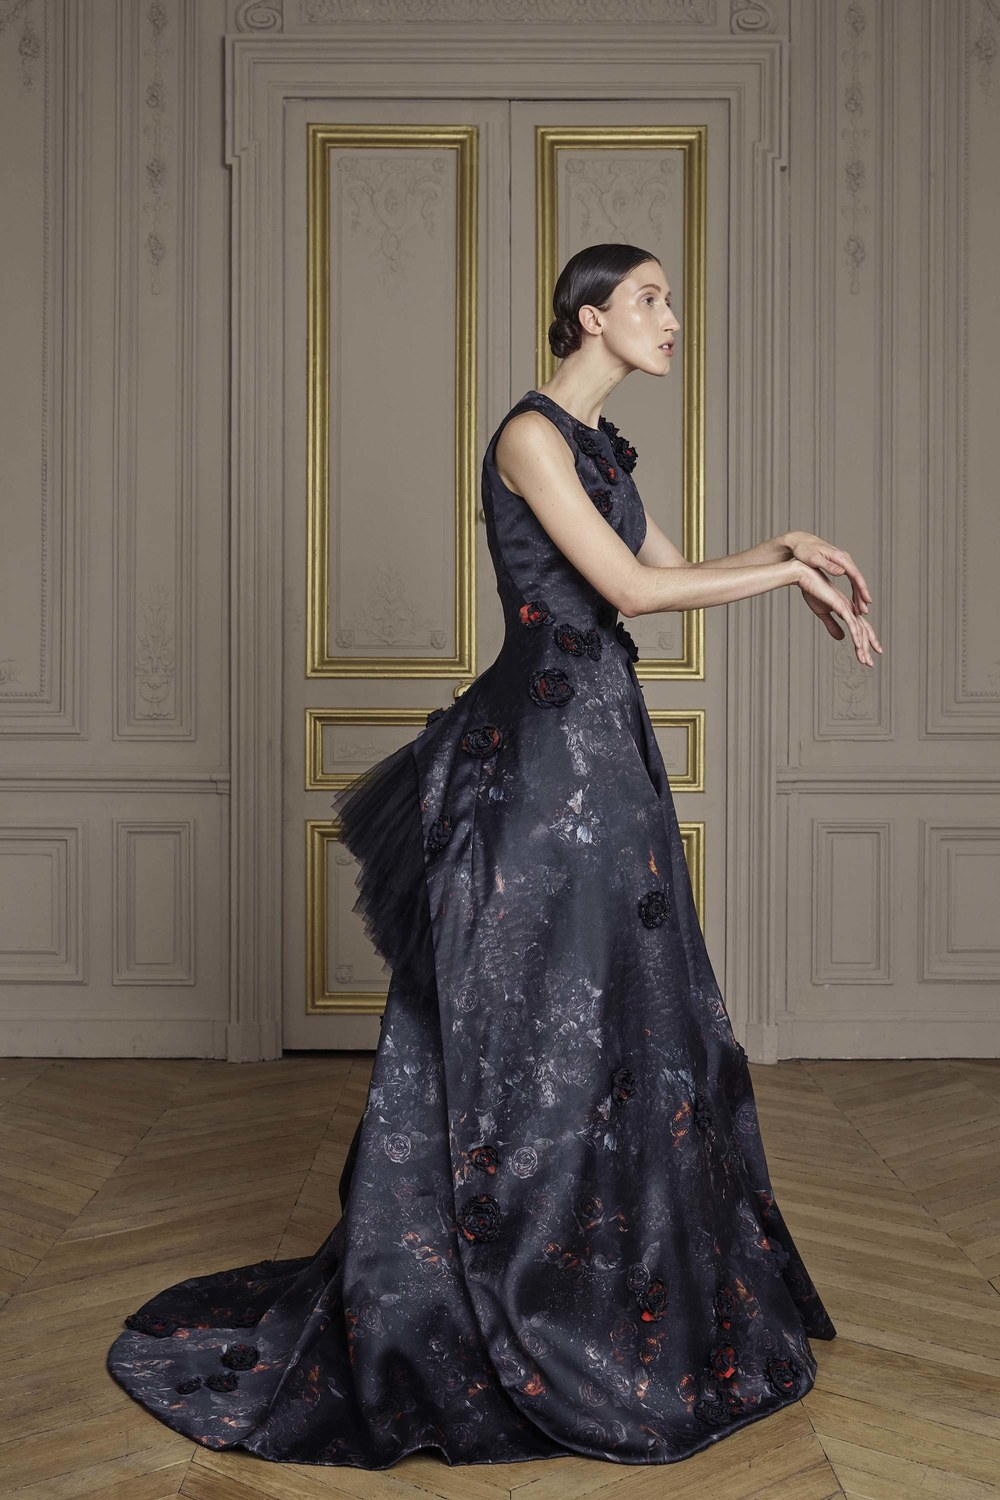 20-giles-deacon-couture.jpg